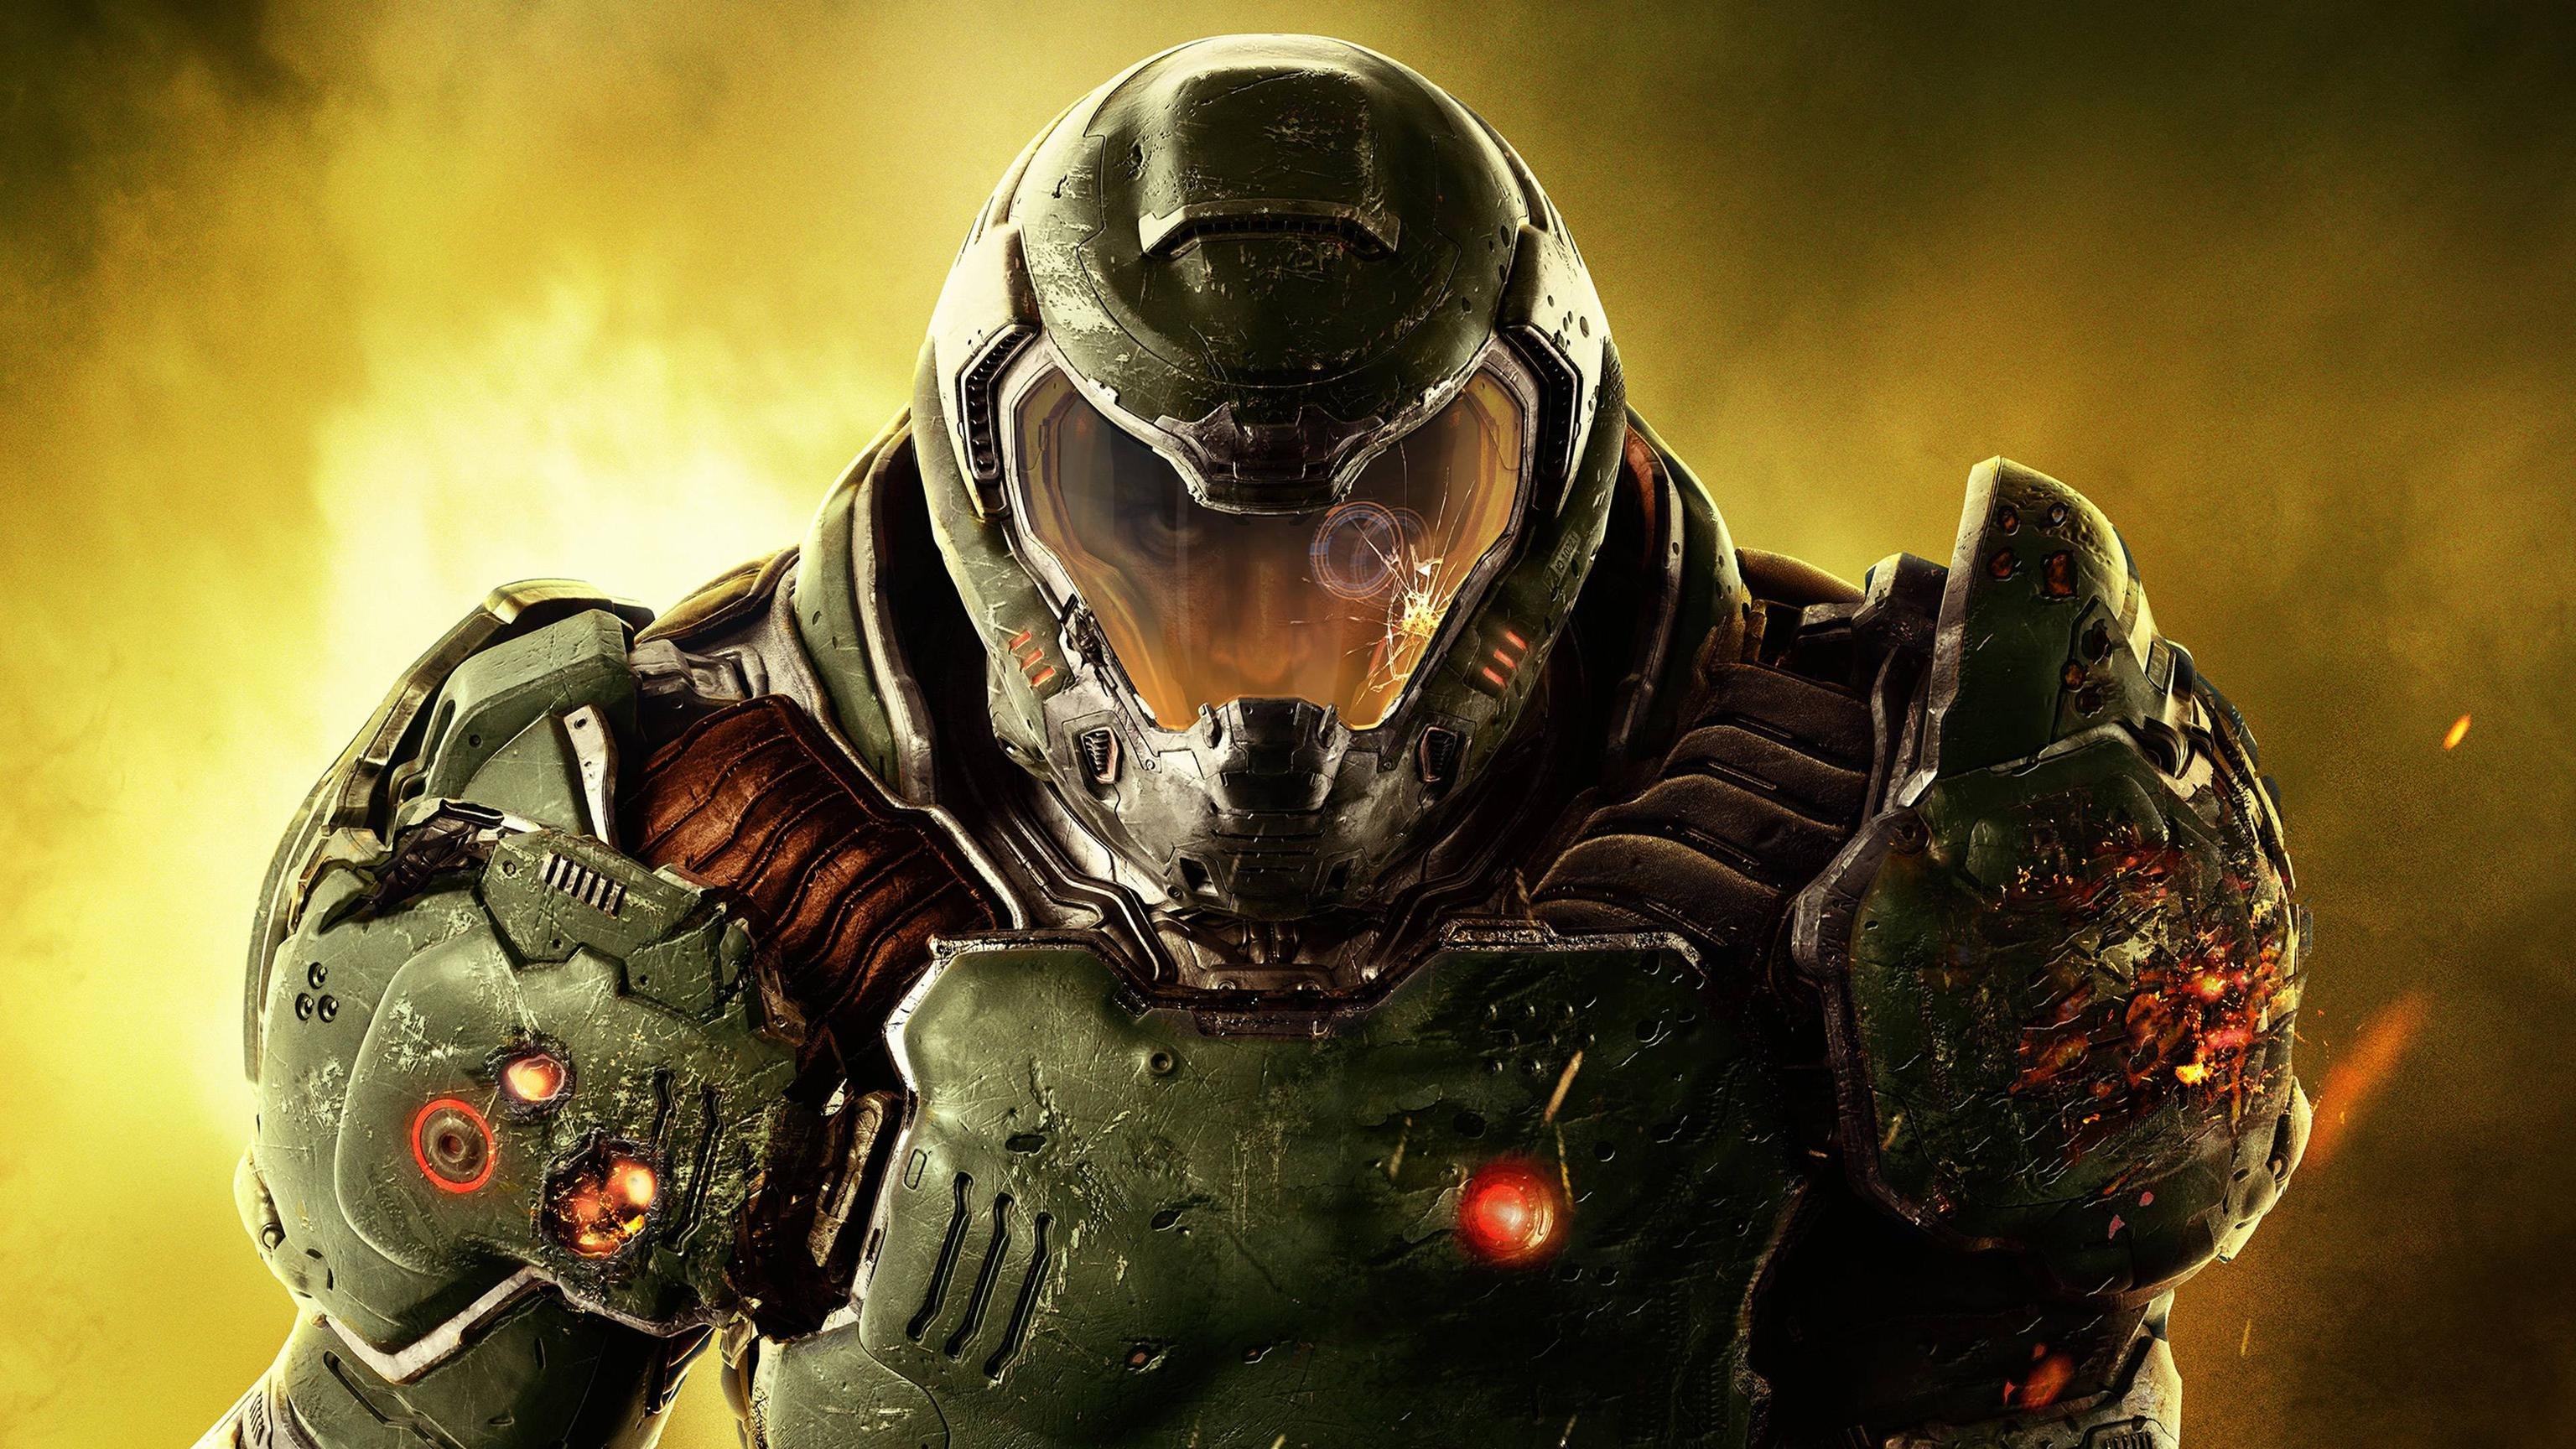 doom 4 2016 video game, hd games, 4k wallpapers, images, backgrounds